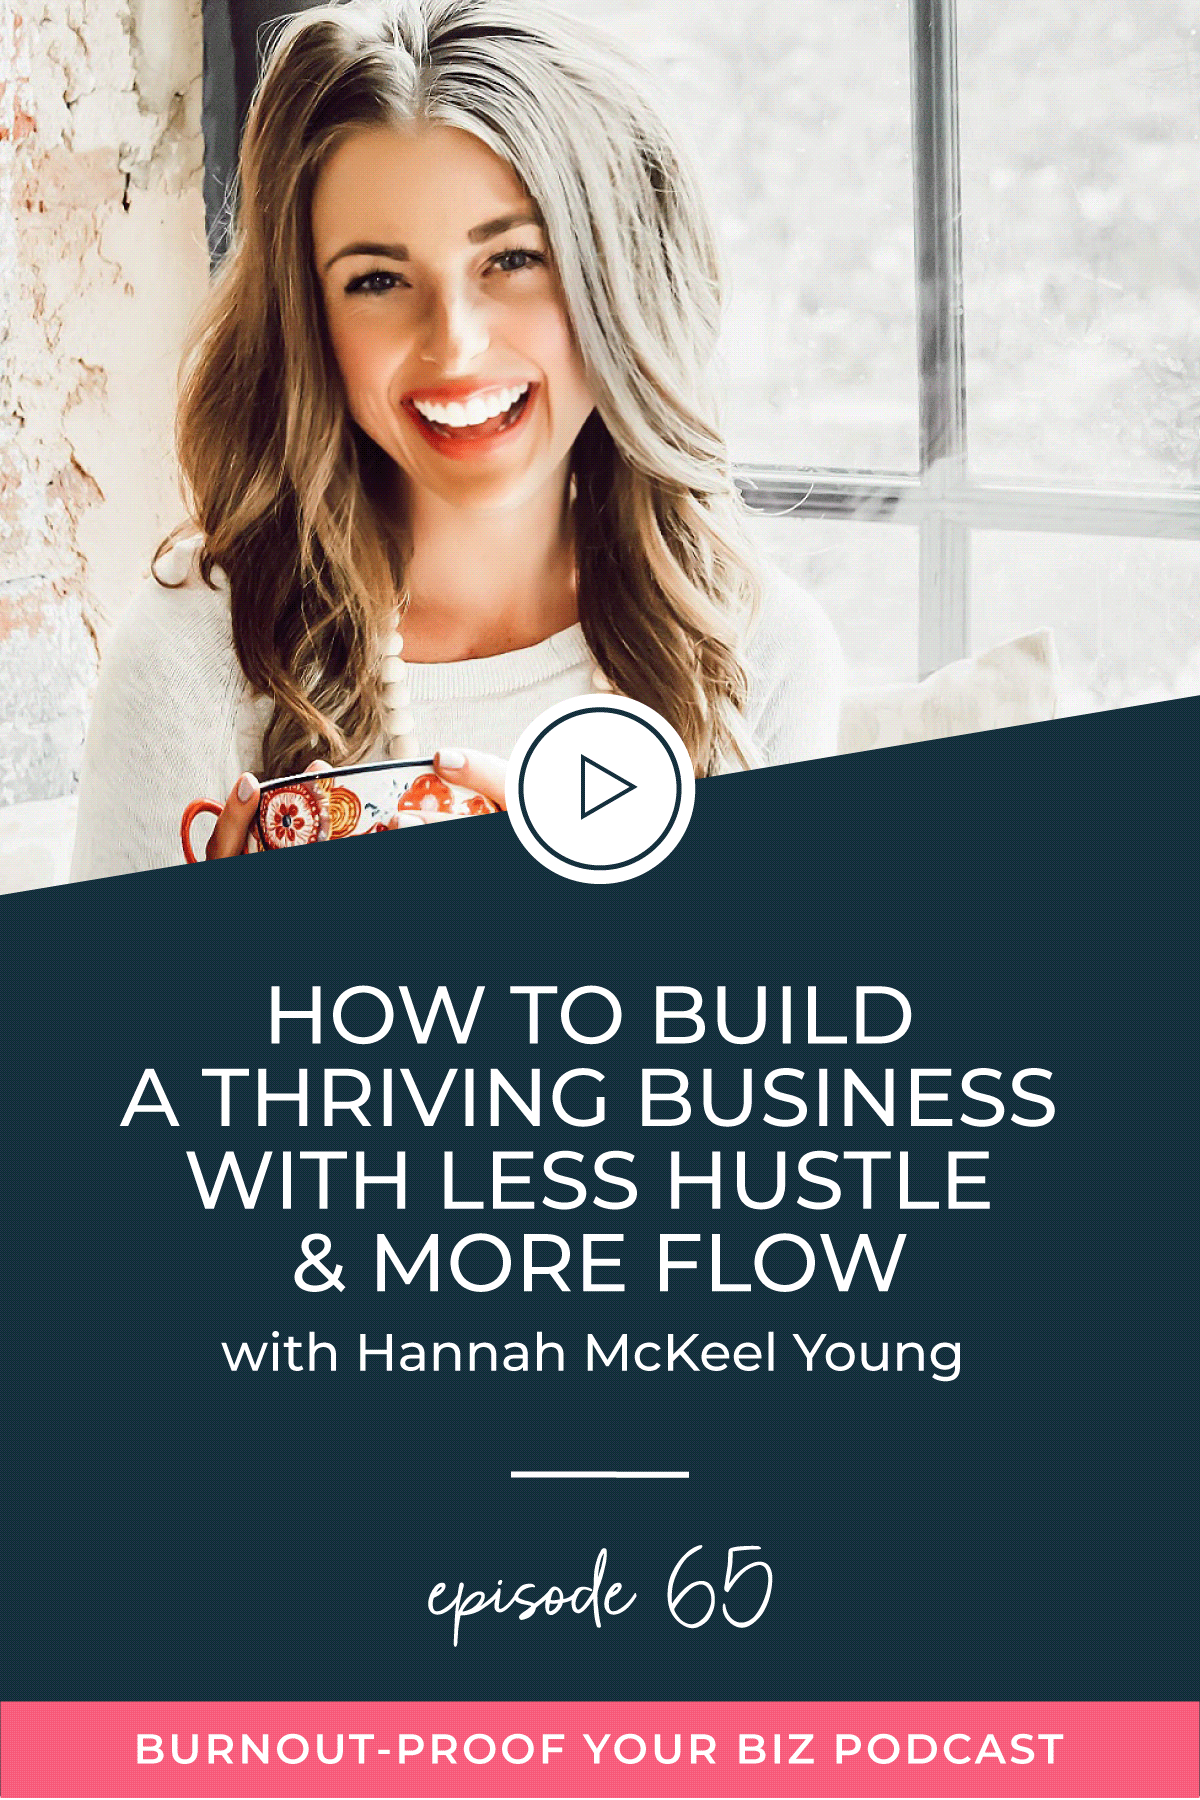 Burnout-Proof Your Biz Podcast with Chelsea B Foster | Episode 065 - How to Build a Thriving Business With Less Hustle and More Flow with Hannah McKeel Young from Yes Please! | Learn how to run your biz and live your dream life on your own terms without the fear of burnout.  |||  BURNOUT-PROOF YOUR BUSINESS PODCAST | WORKFLOW & PRODUCTIVITY SPECIALIST | LIFESTYLE DESIGN | FREEDOM LIFESTYLE | DESIRES & INTENTIONS | MINDFULNESS | HANNAH MCKEEL YOUNG | AUTHENTICITY